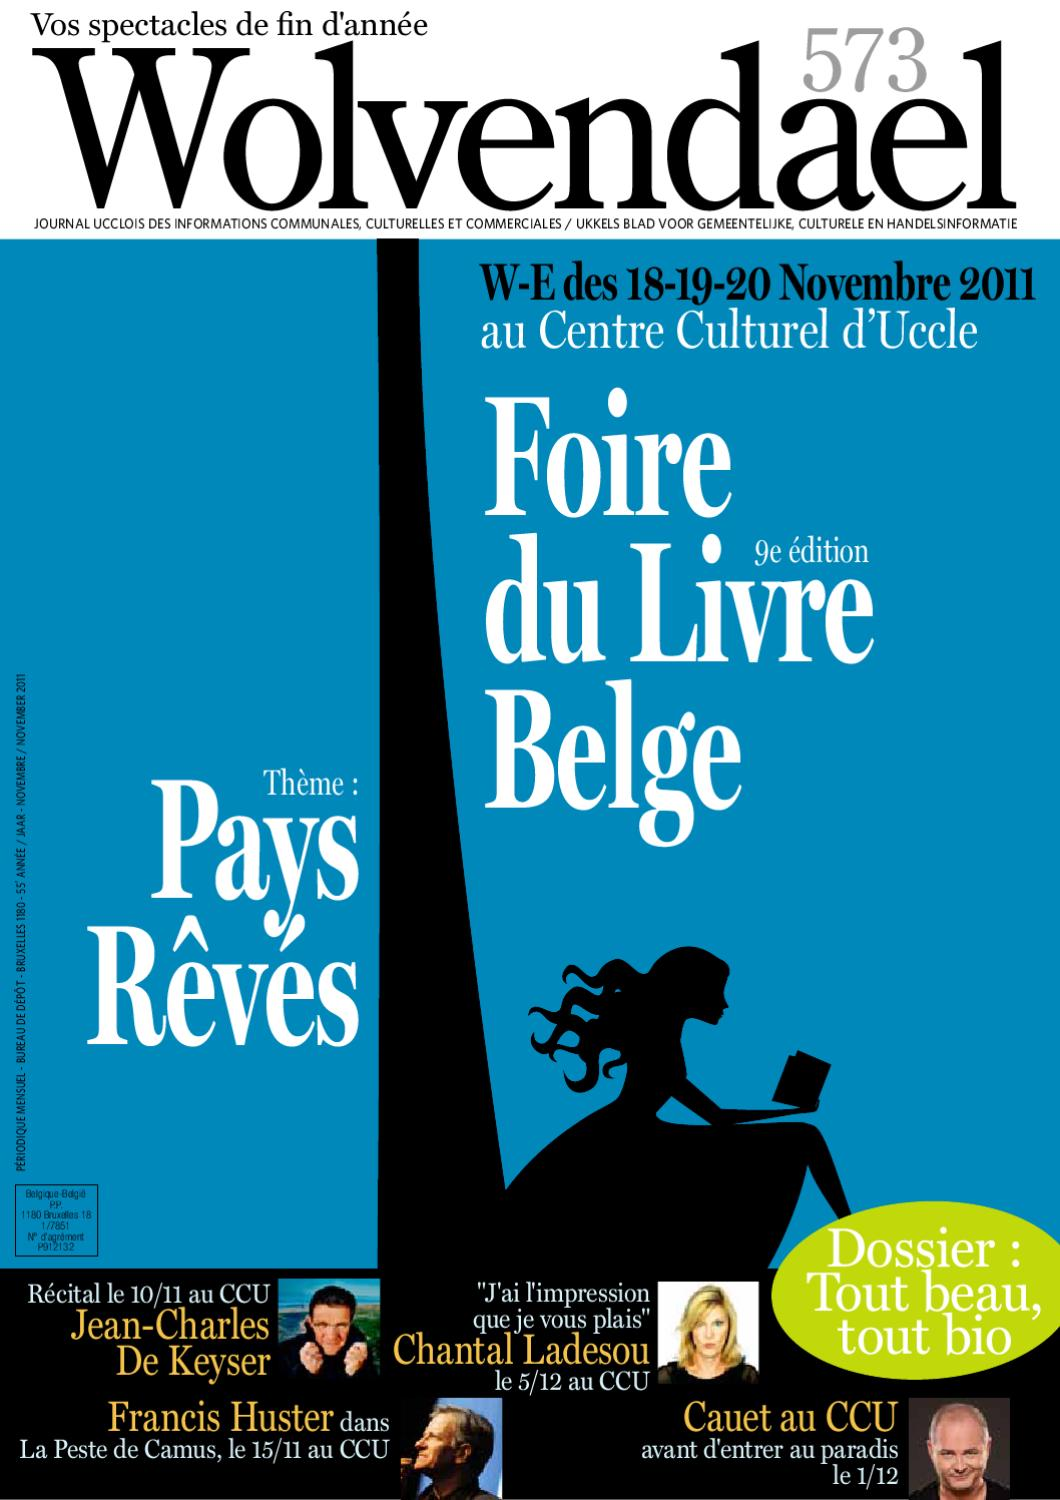 Wolvendael Mag N By Centre Culturel DUccle Issuu - Code reduction e carreleur